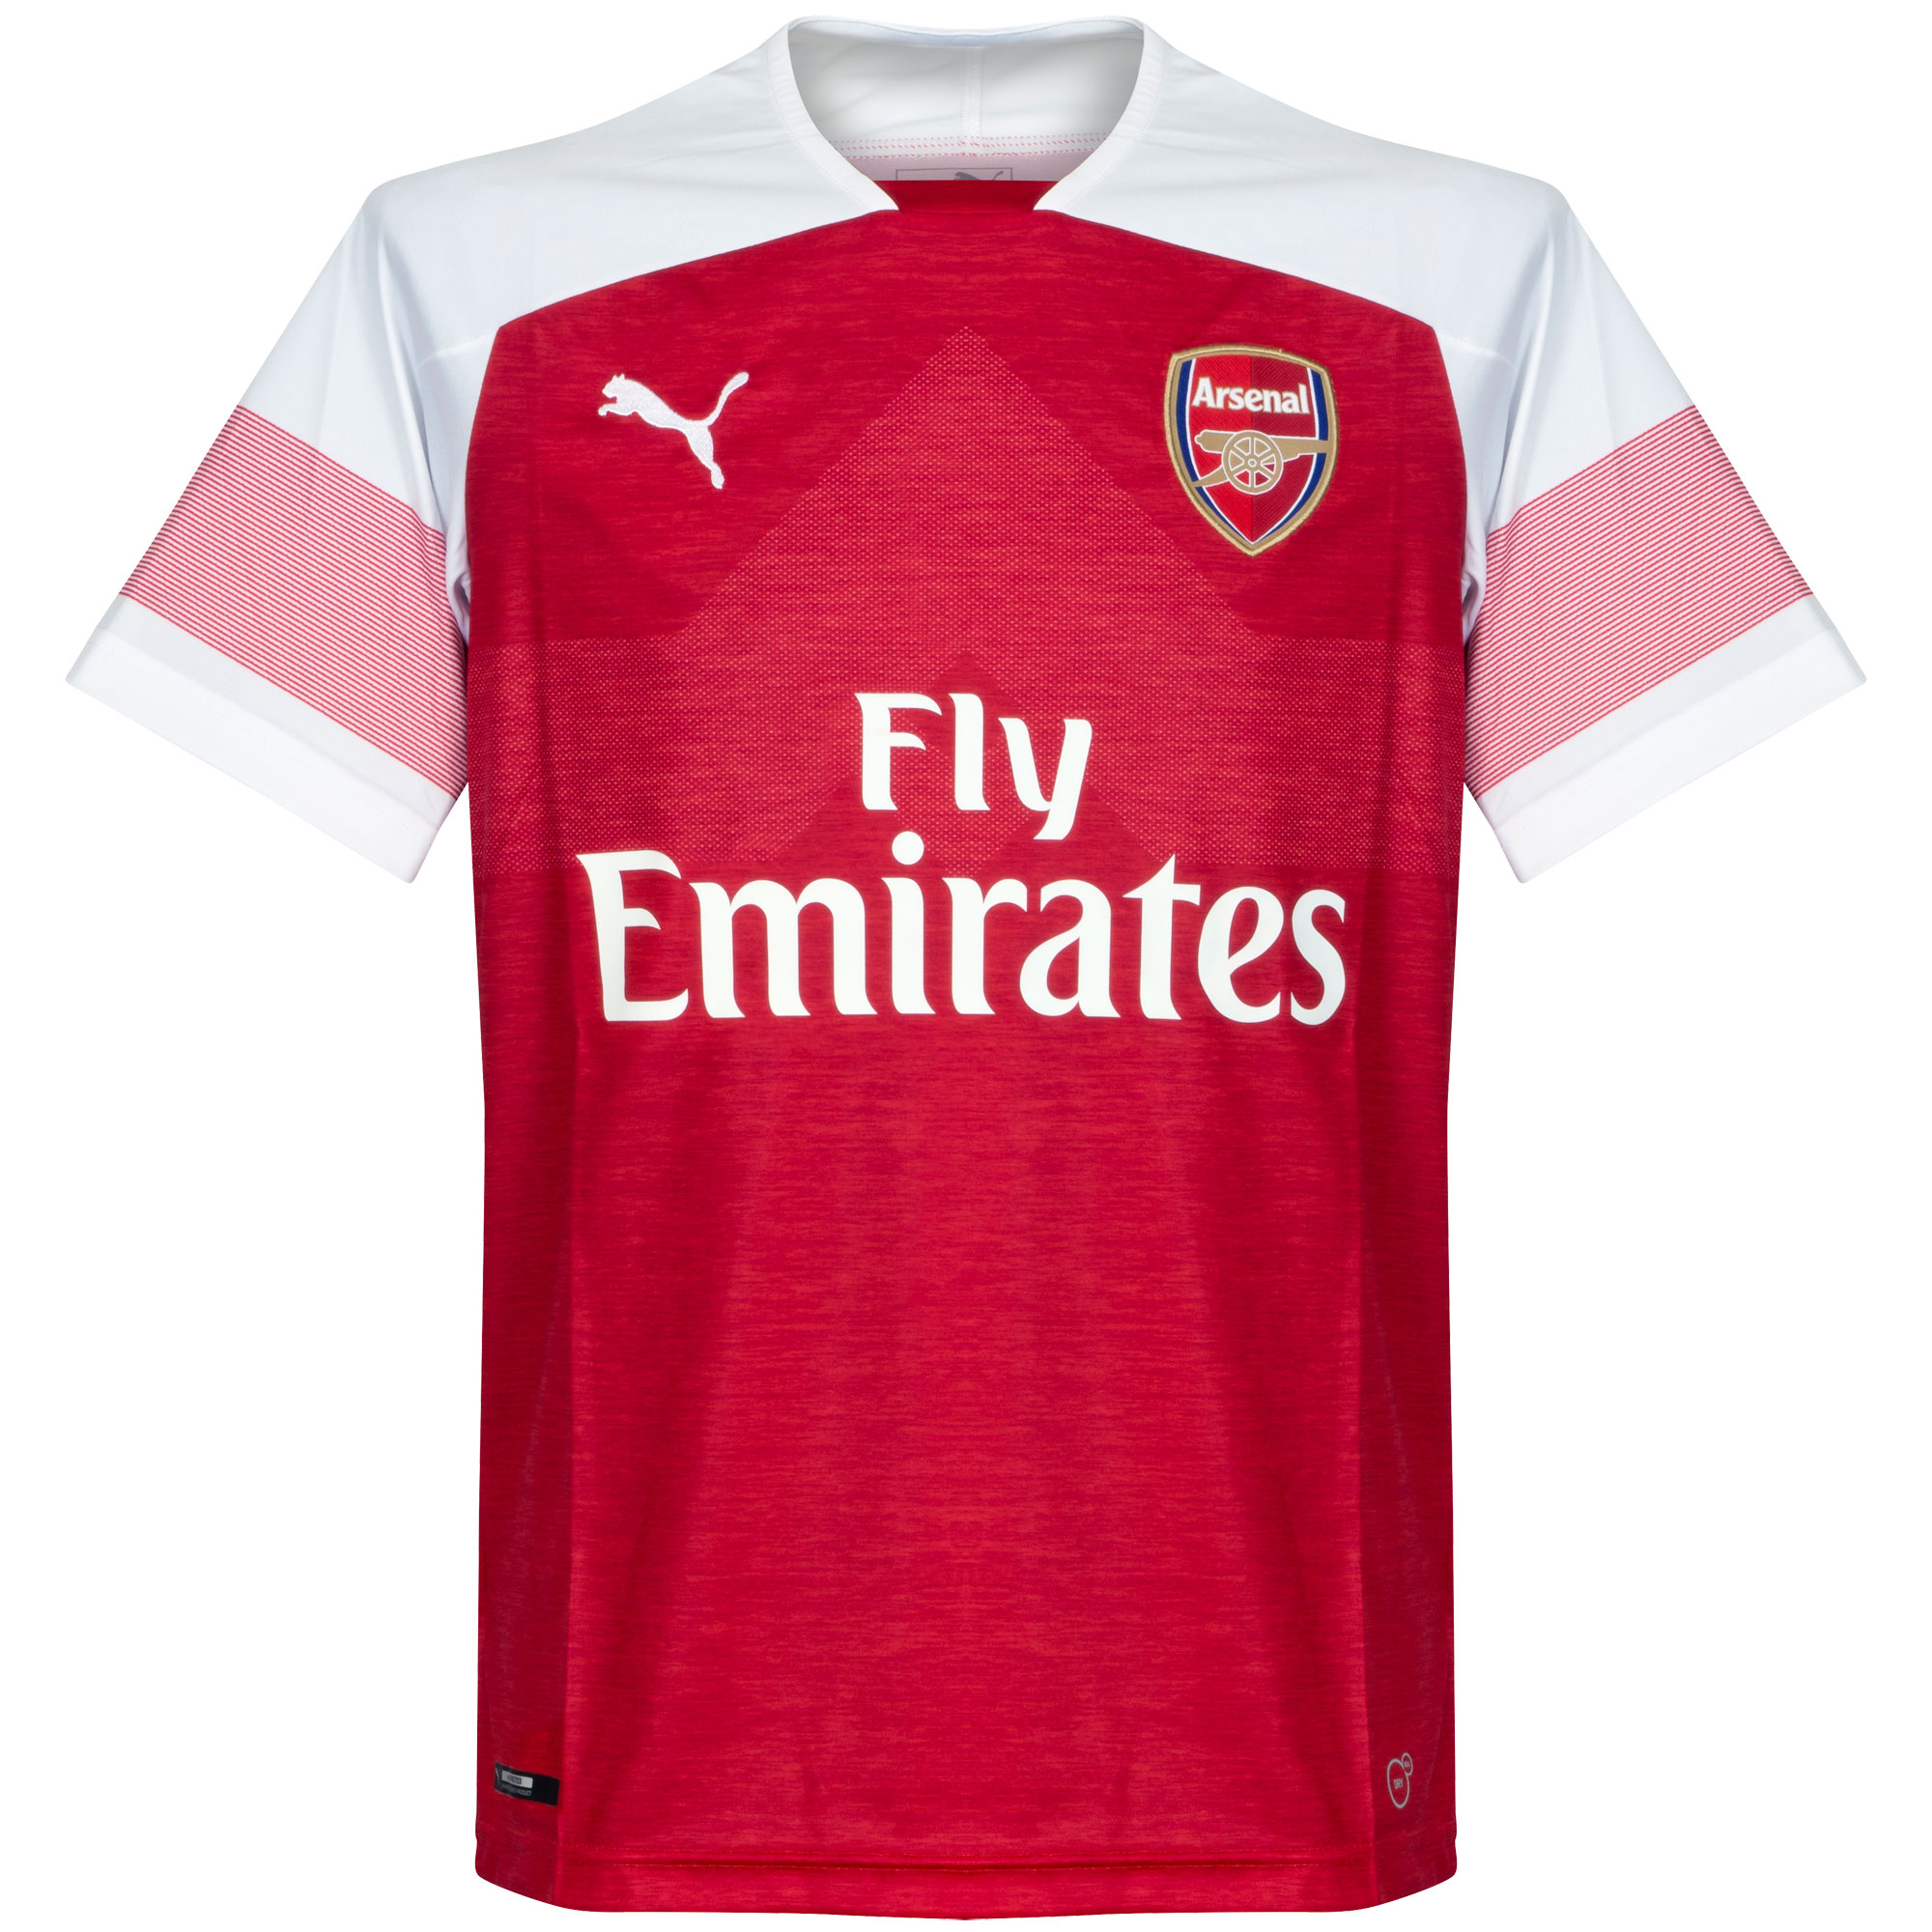 Arsenal Home Shirt 2018 2019